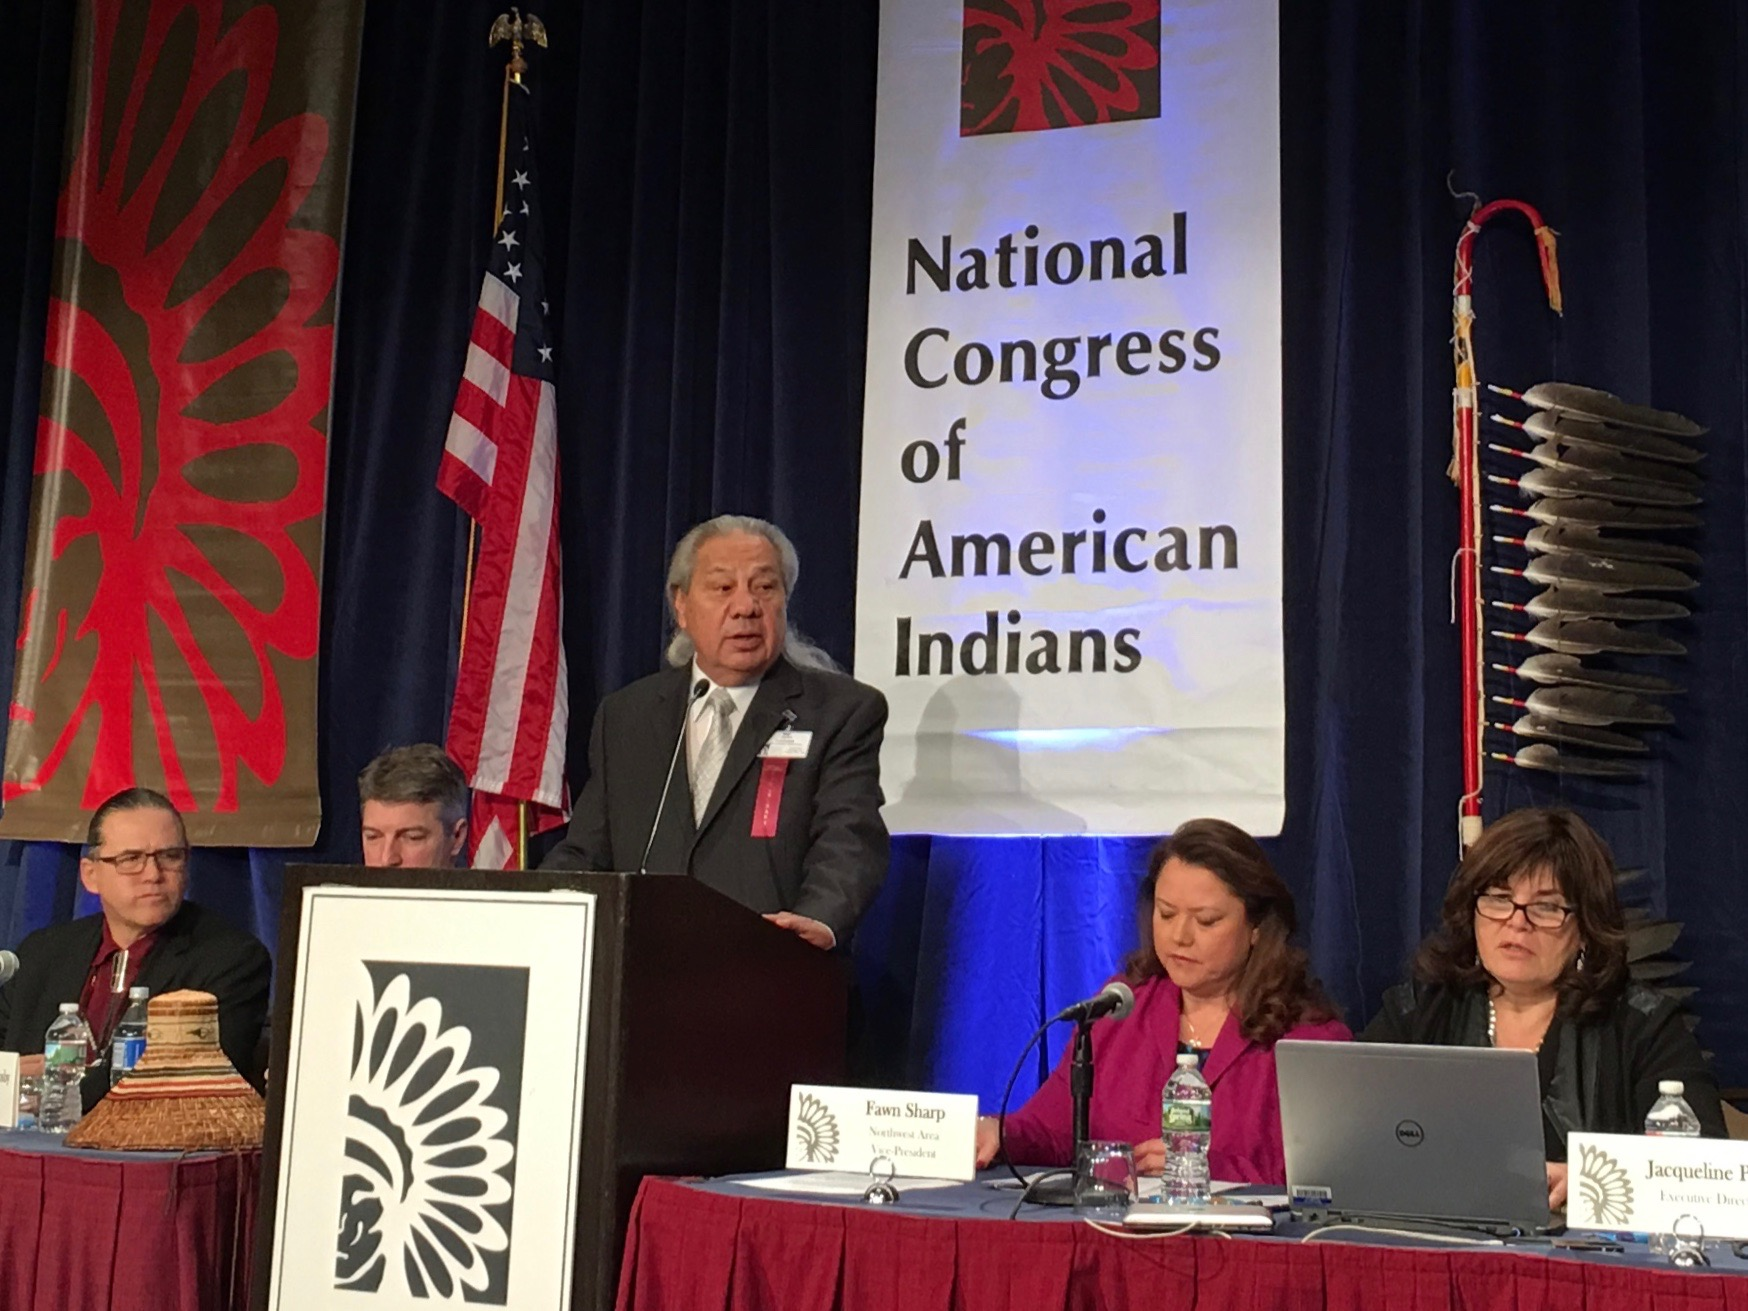 John Echohawk of Native American Rights Fund receives top honor